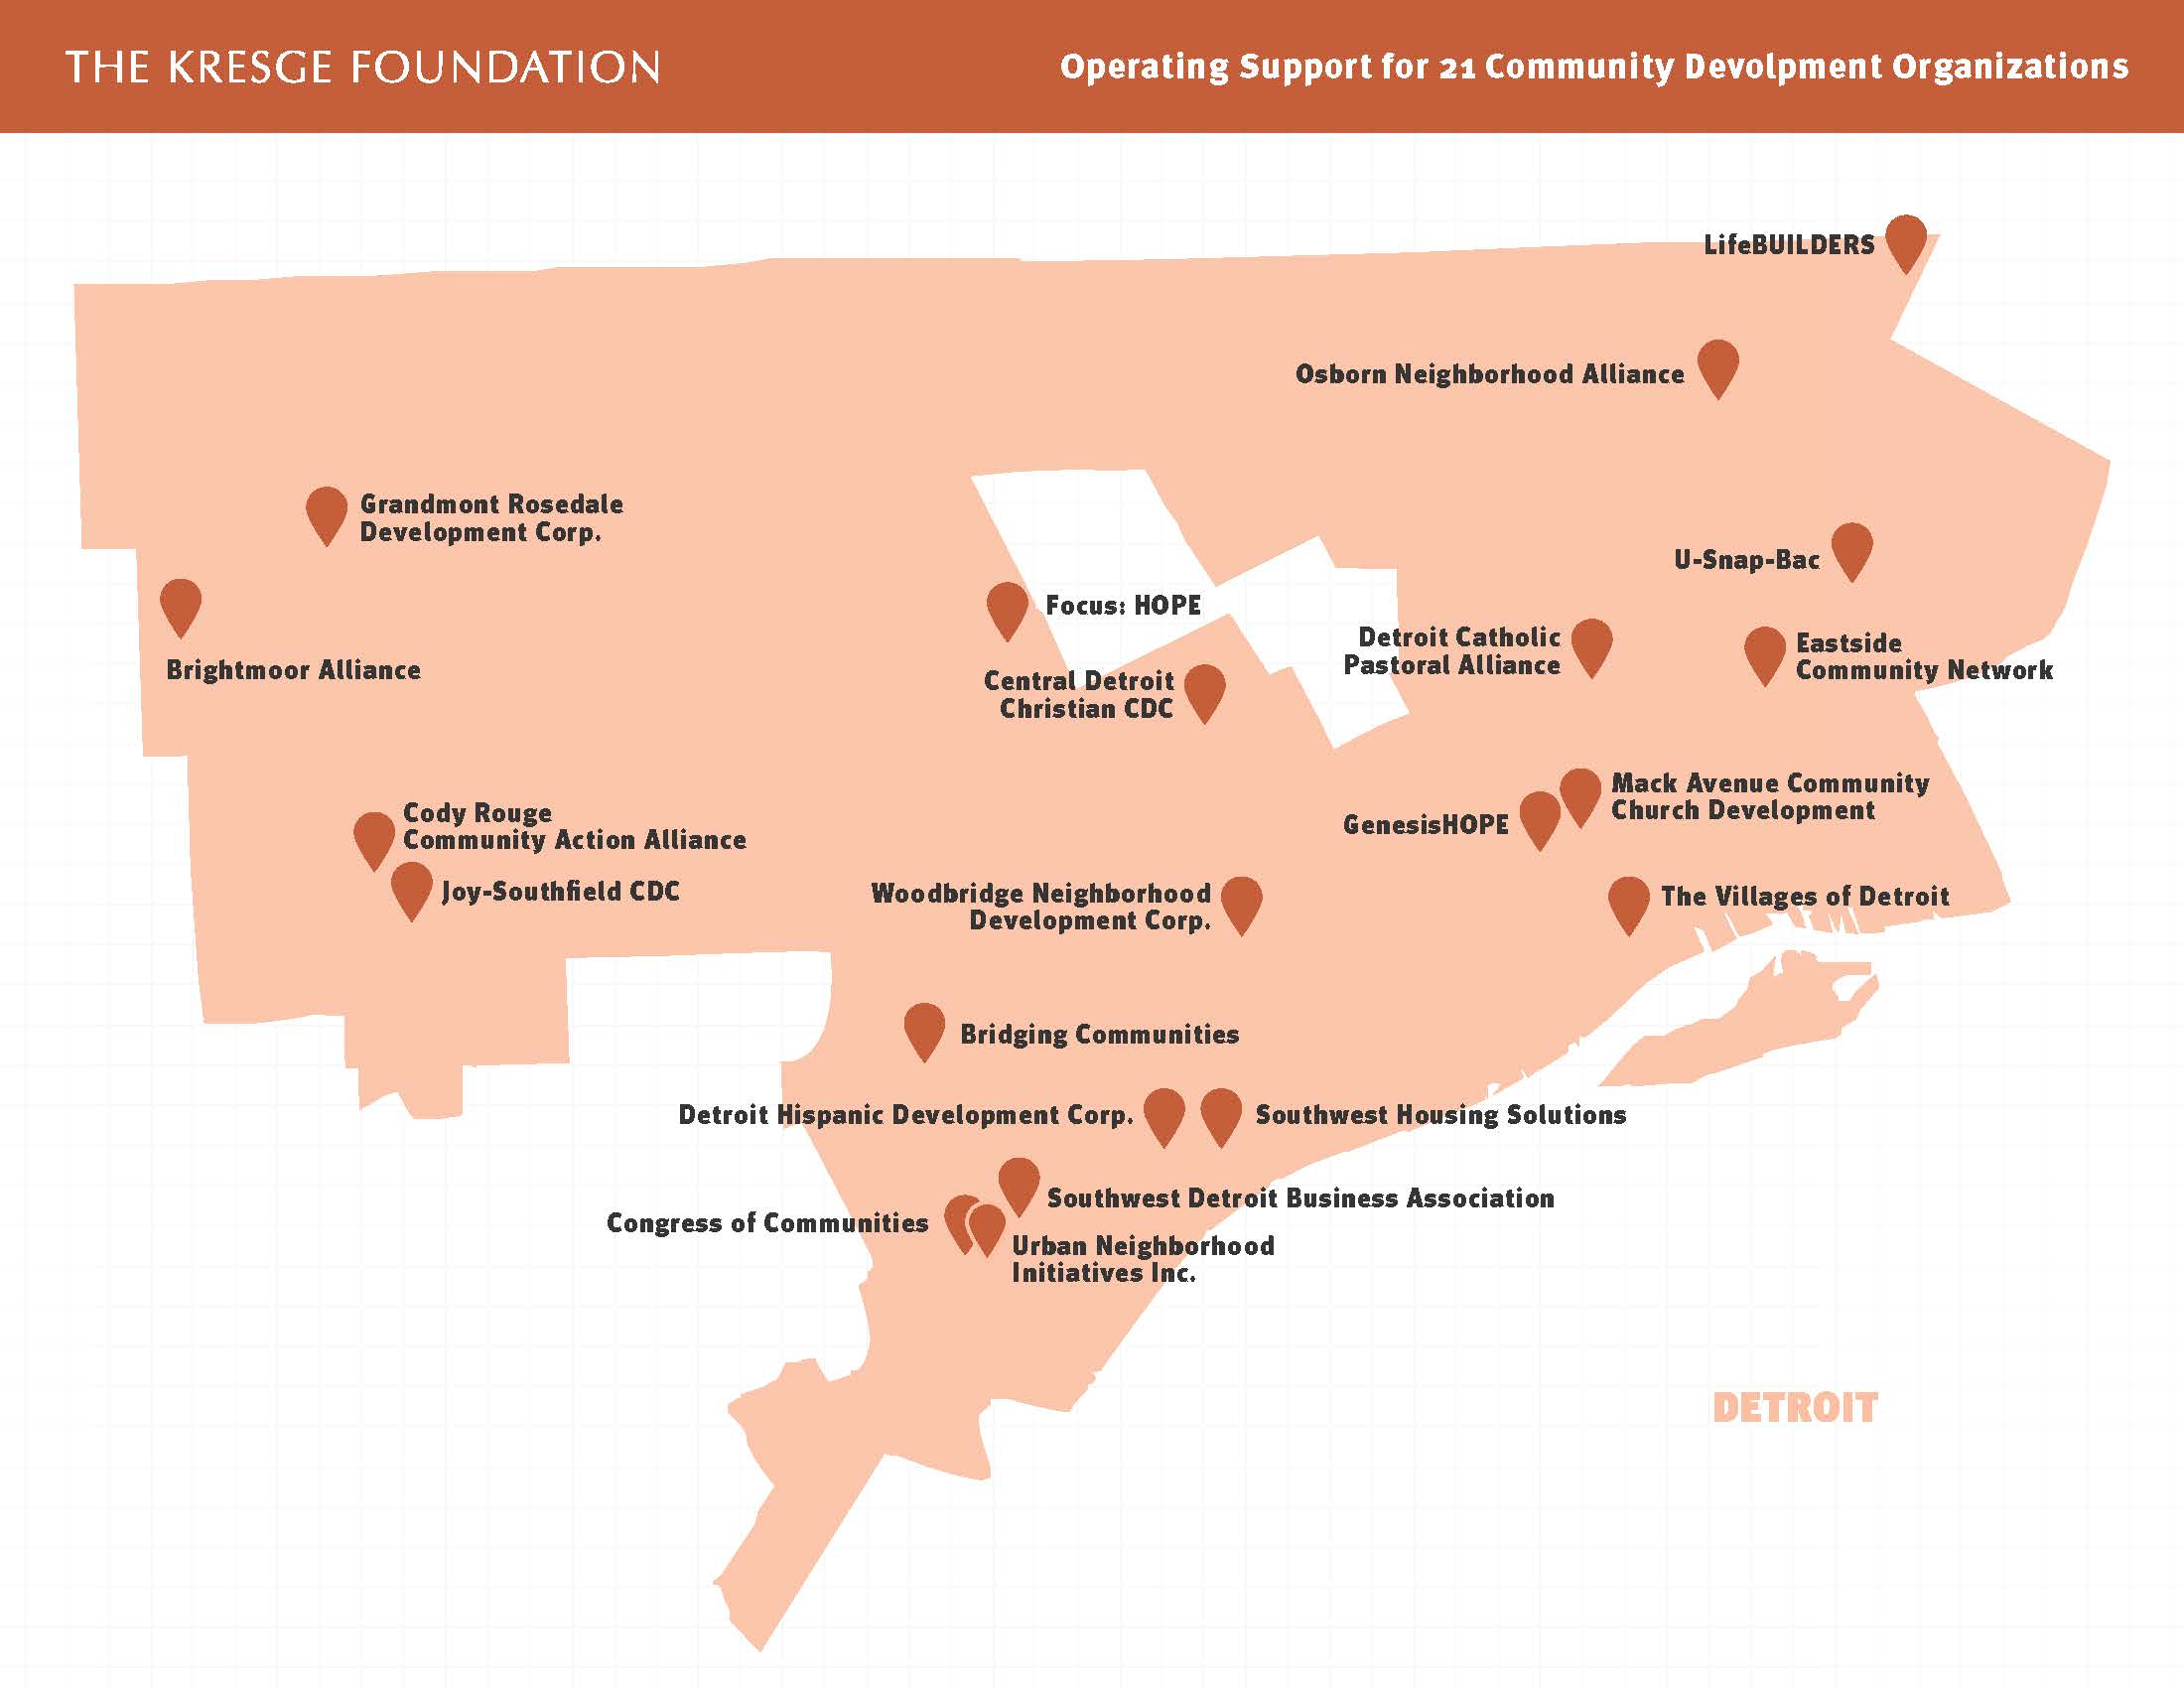 Map showing sites of 21 Detroit community development organizations receiving Kresge operating supports